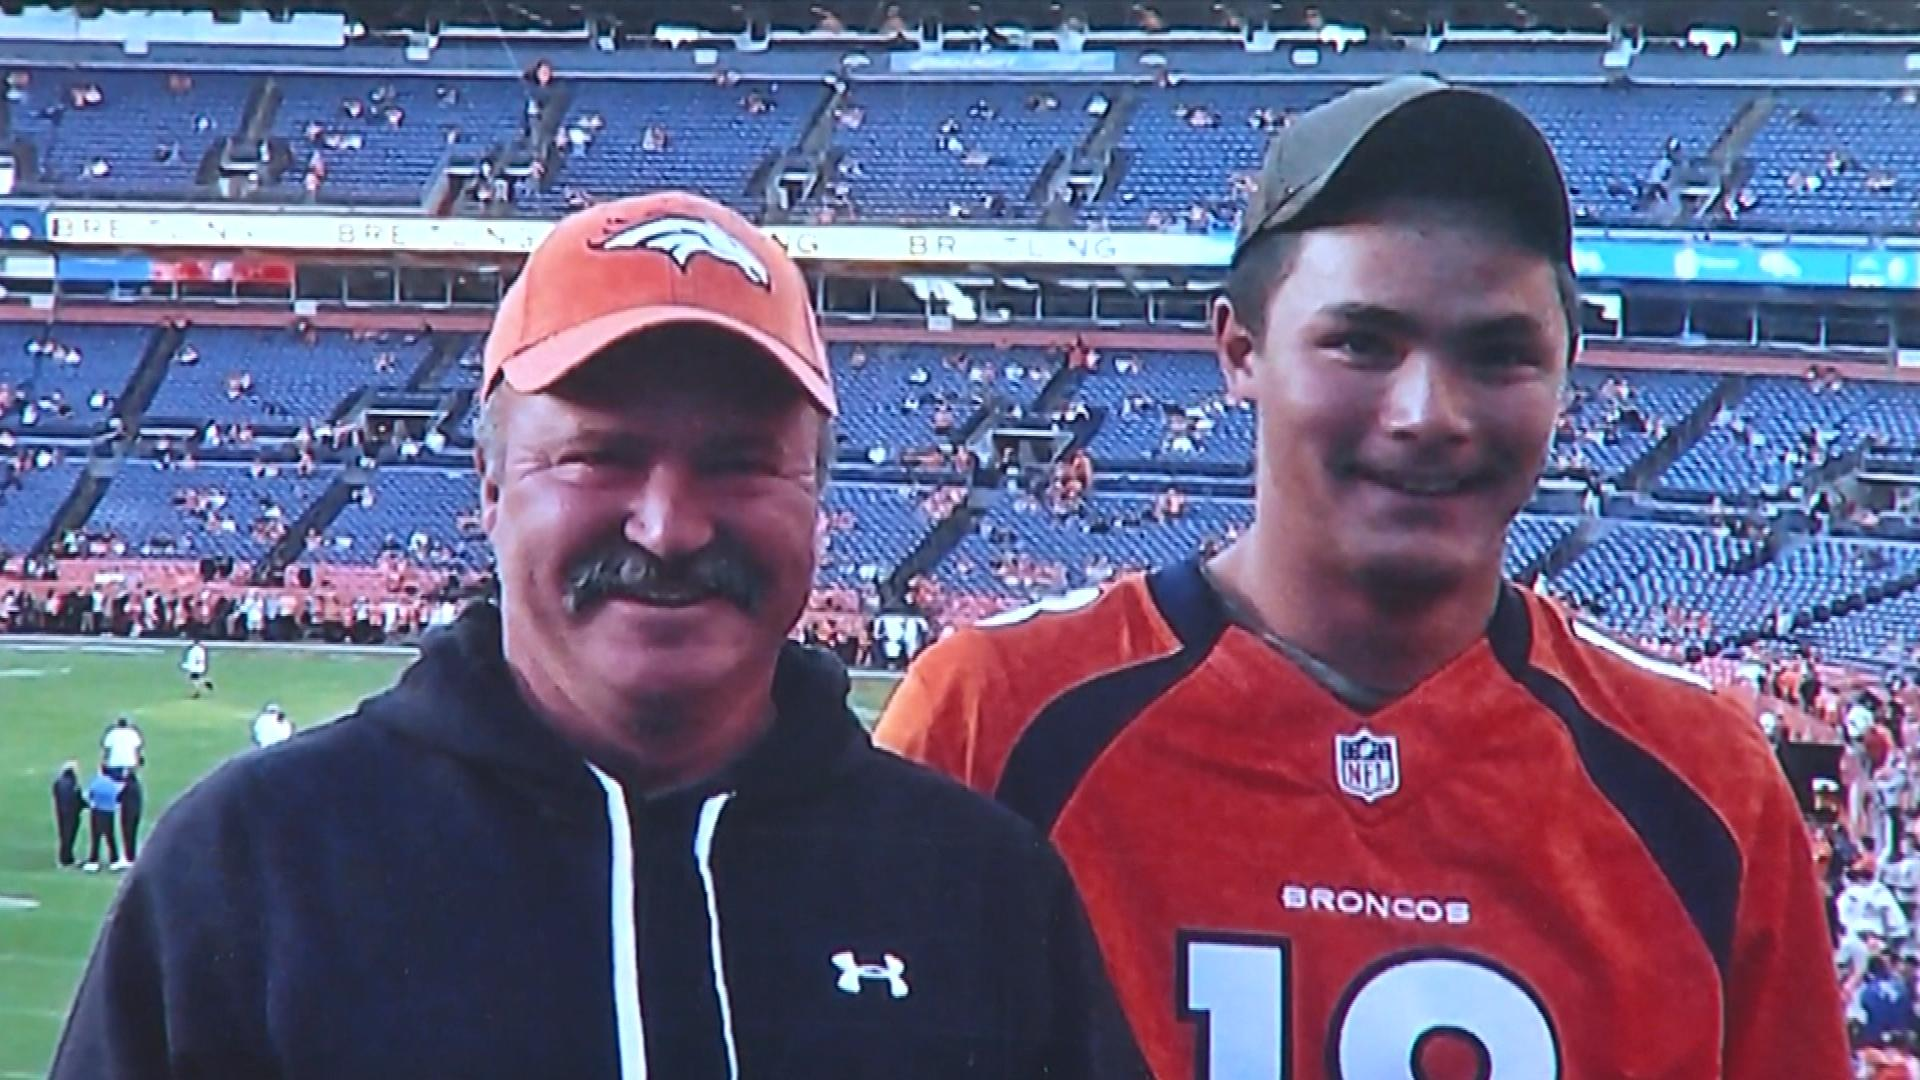 Paul Kitterman, left, with his stepson (credit: CBS)